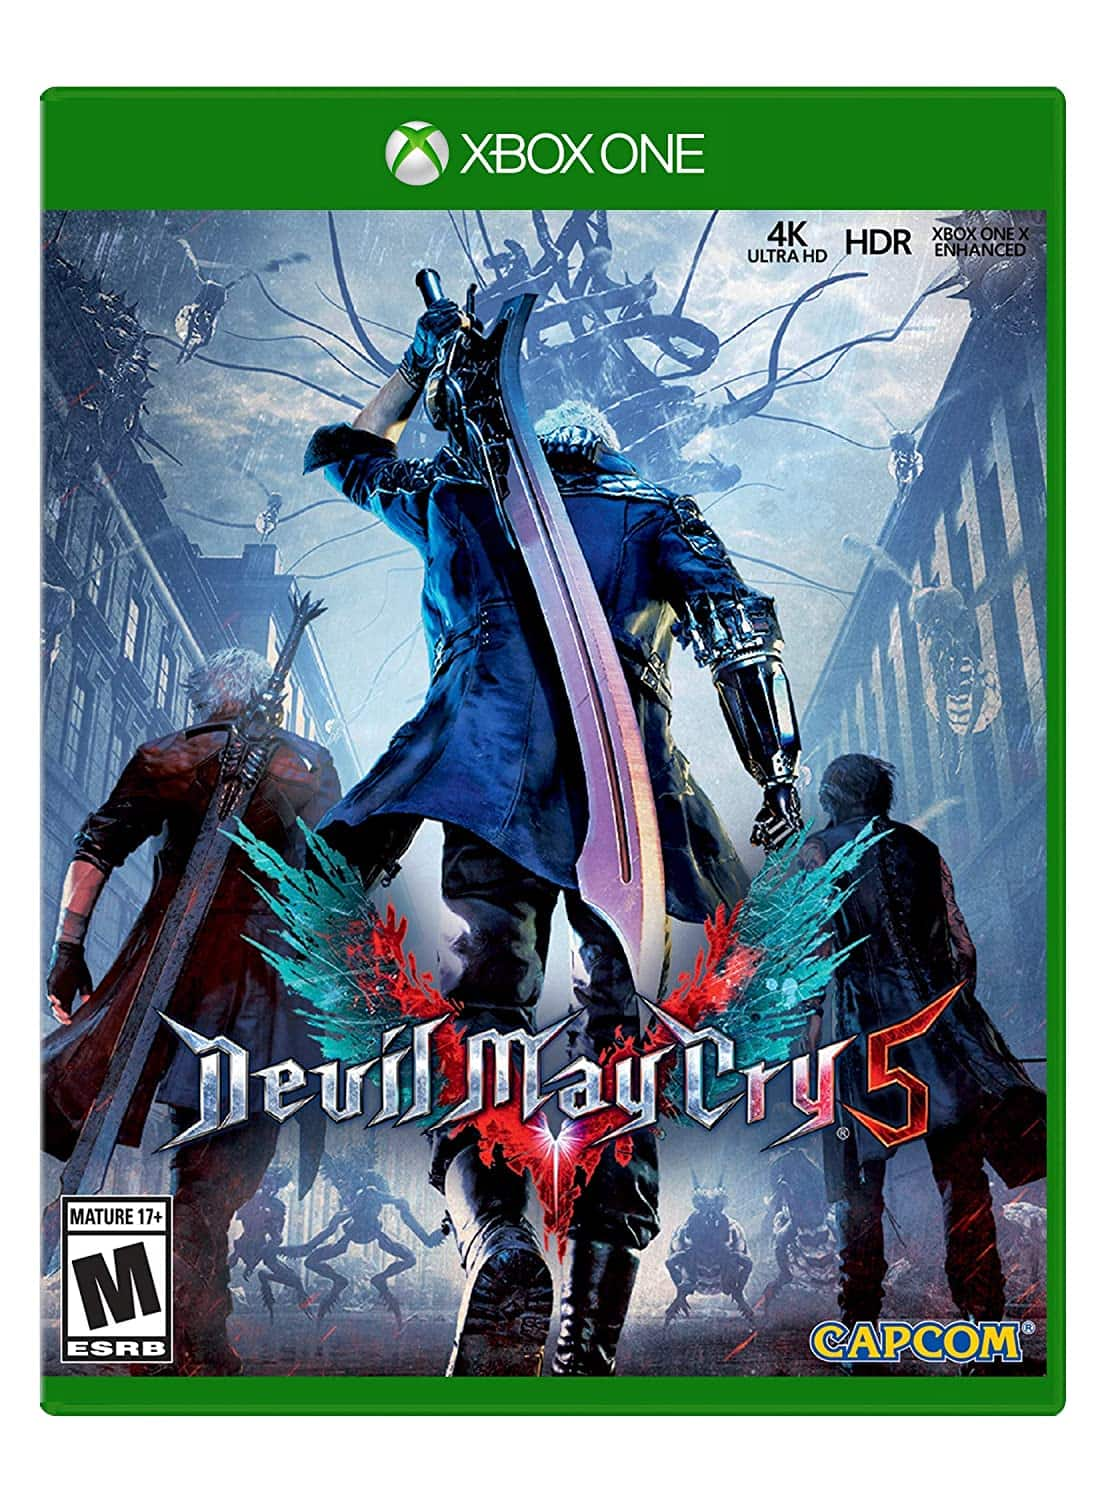 Devil May Cry 5 - Xbox One - $10.99 @ GameStop